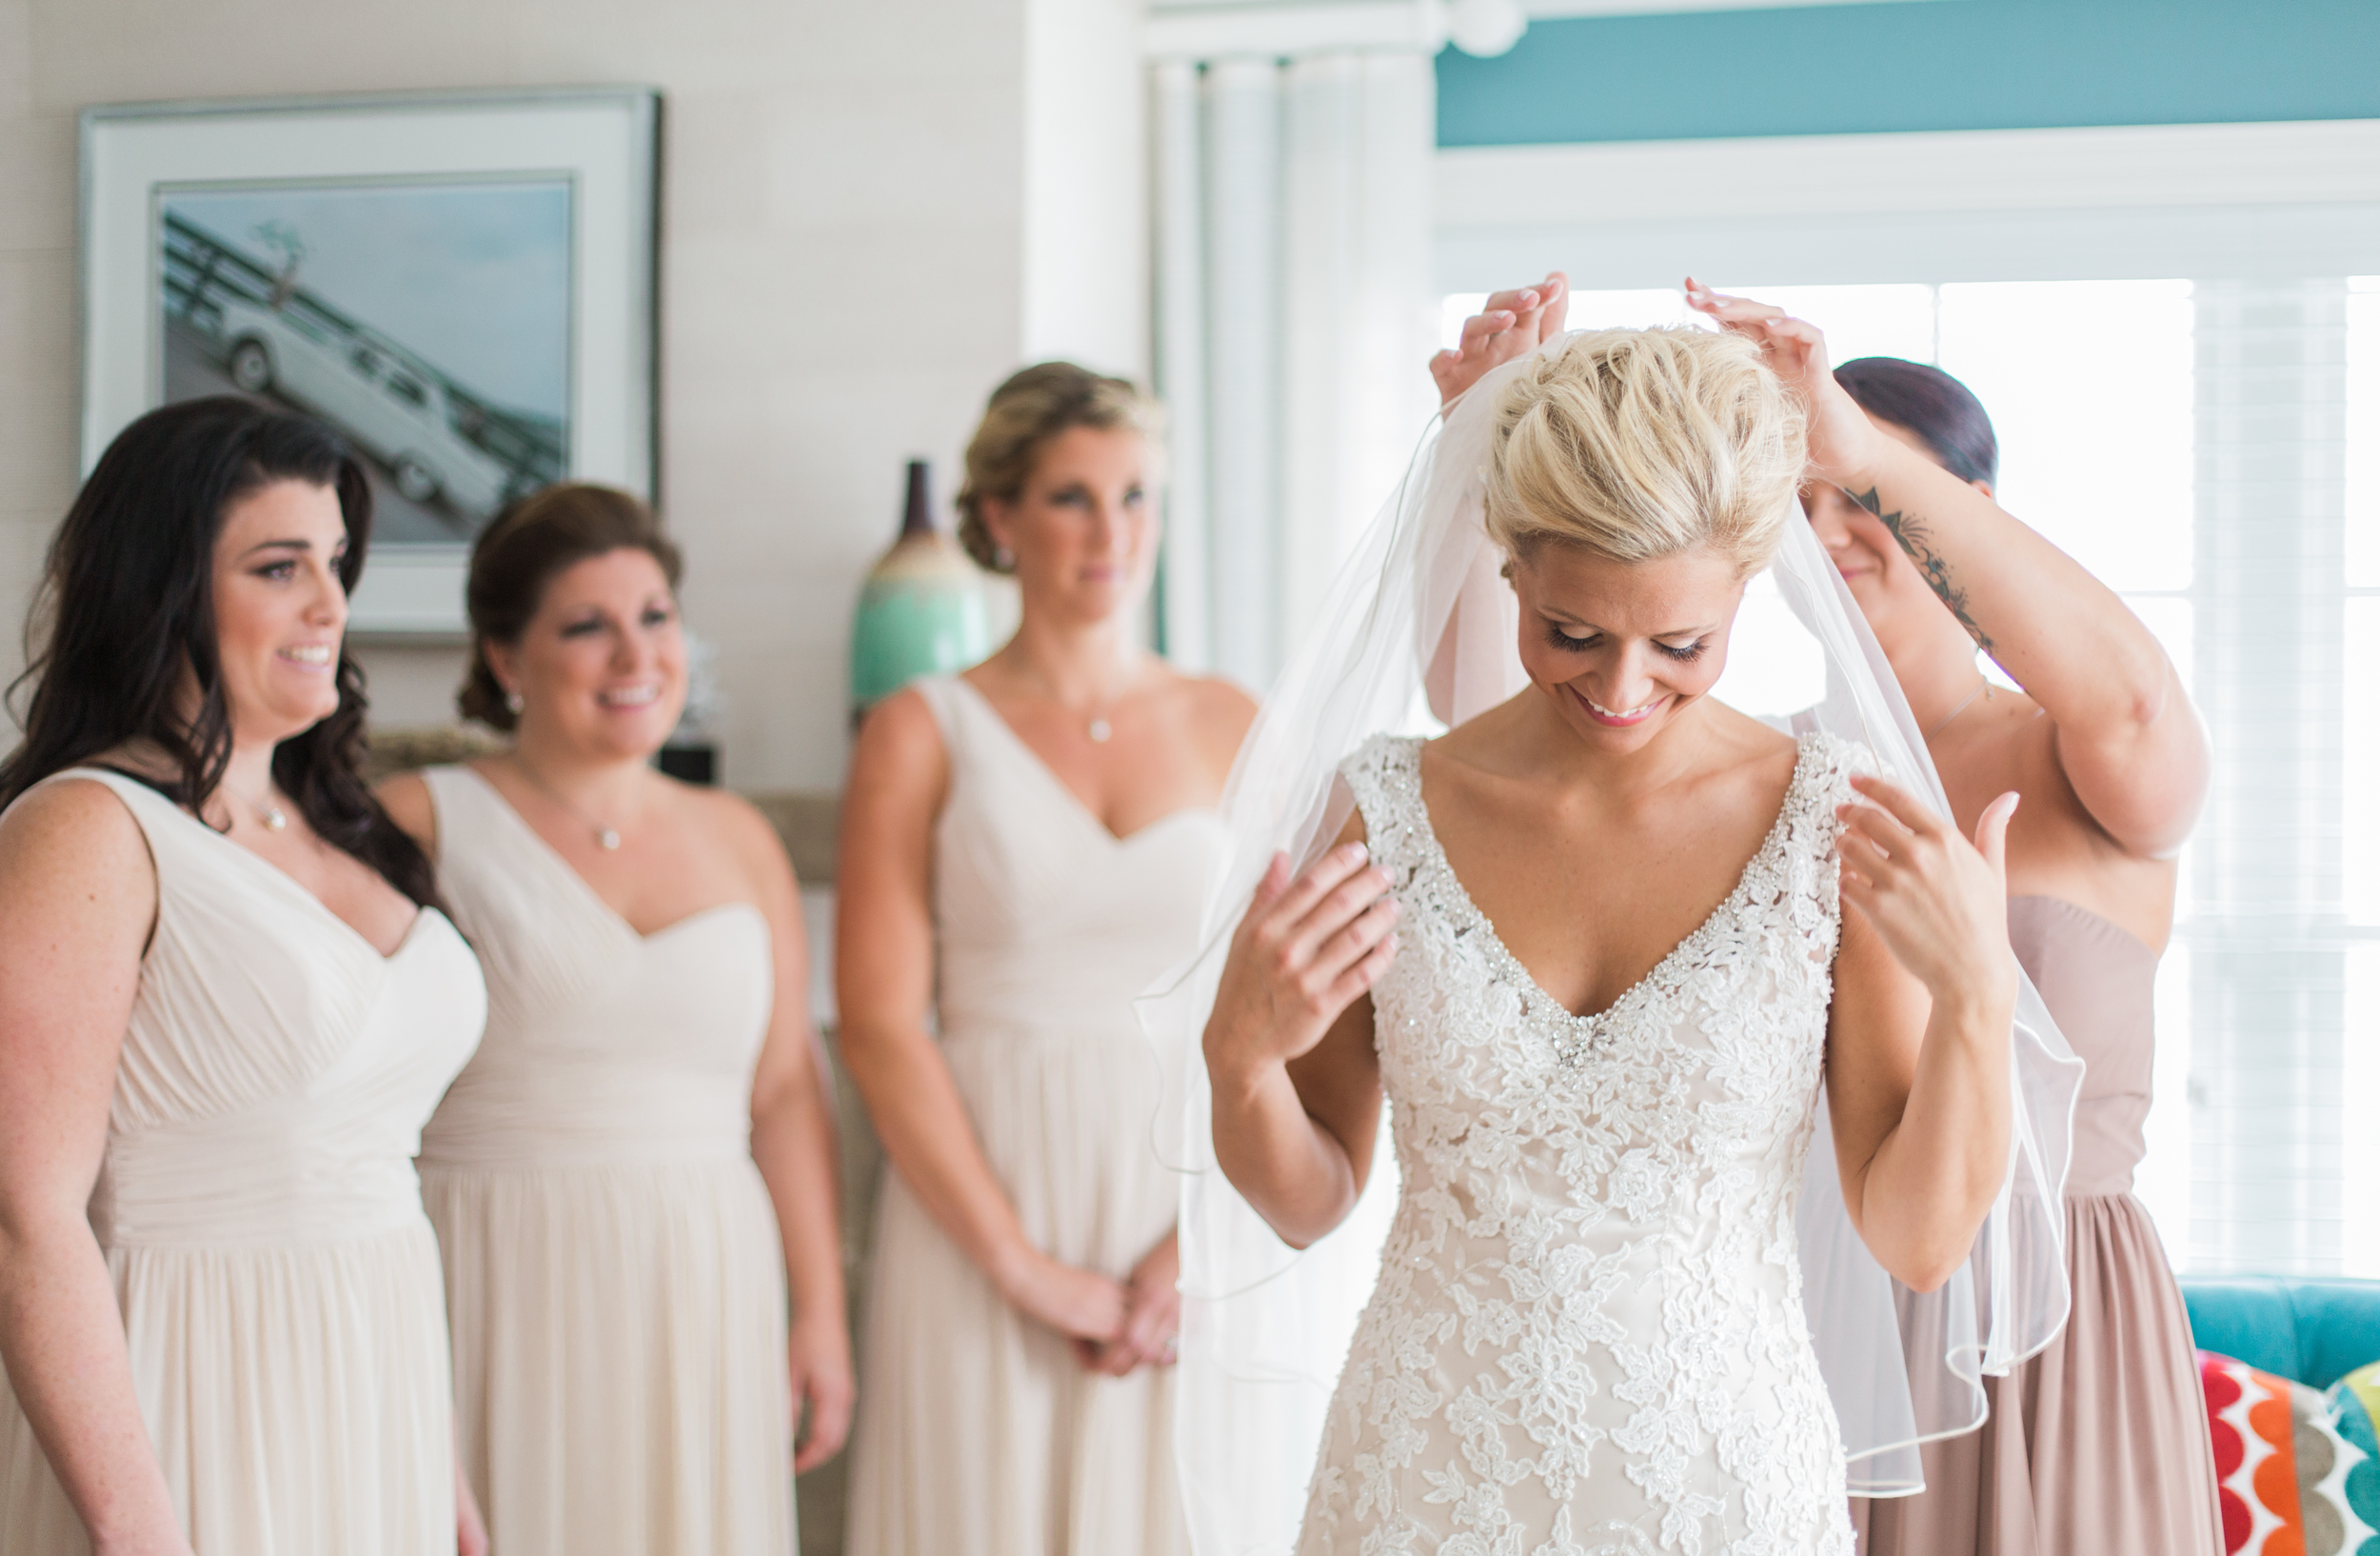 South-Jersey-Wedding-Photographer_The-Reeds-At-Shelter-Haven-Wedding-14.jpg